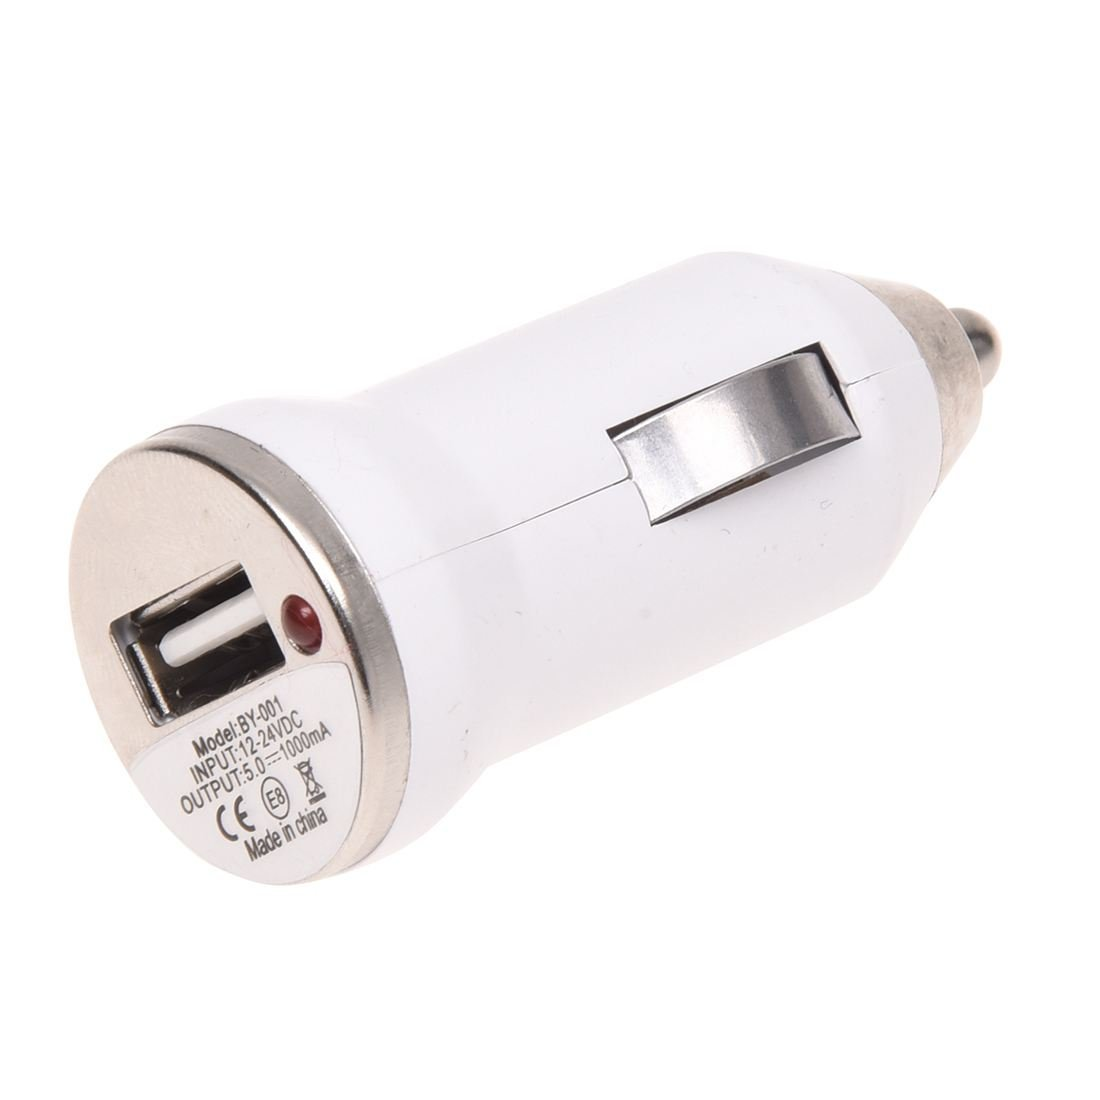 Charger - TOOGOO(R) USB Car Cigarette Lighter Charger Adapter For iPhone 5S 4S iPod Galaxy S3 S4 white